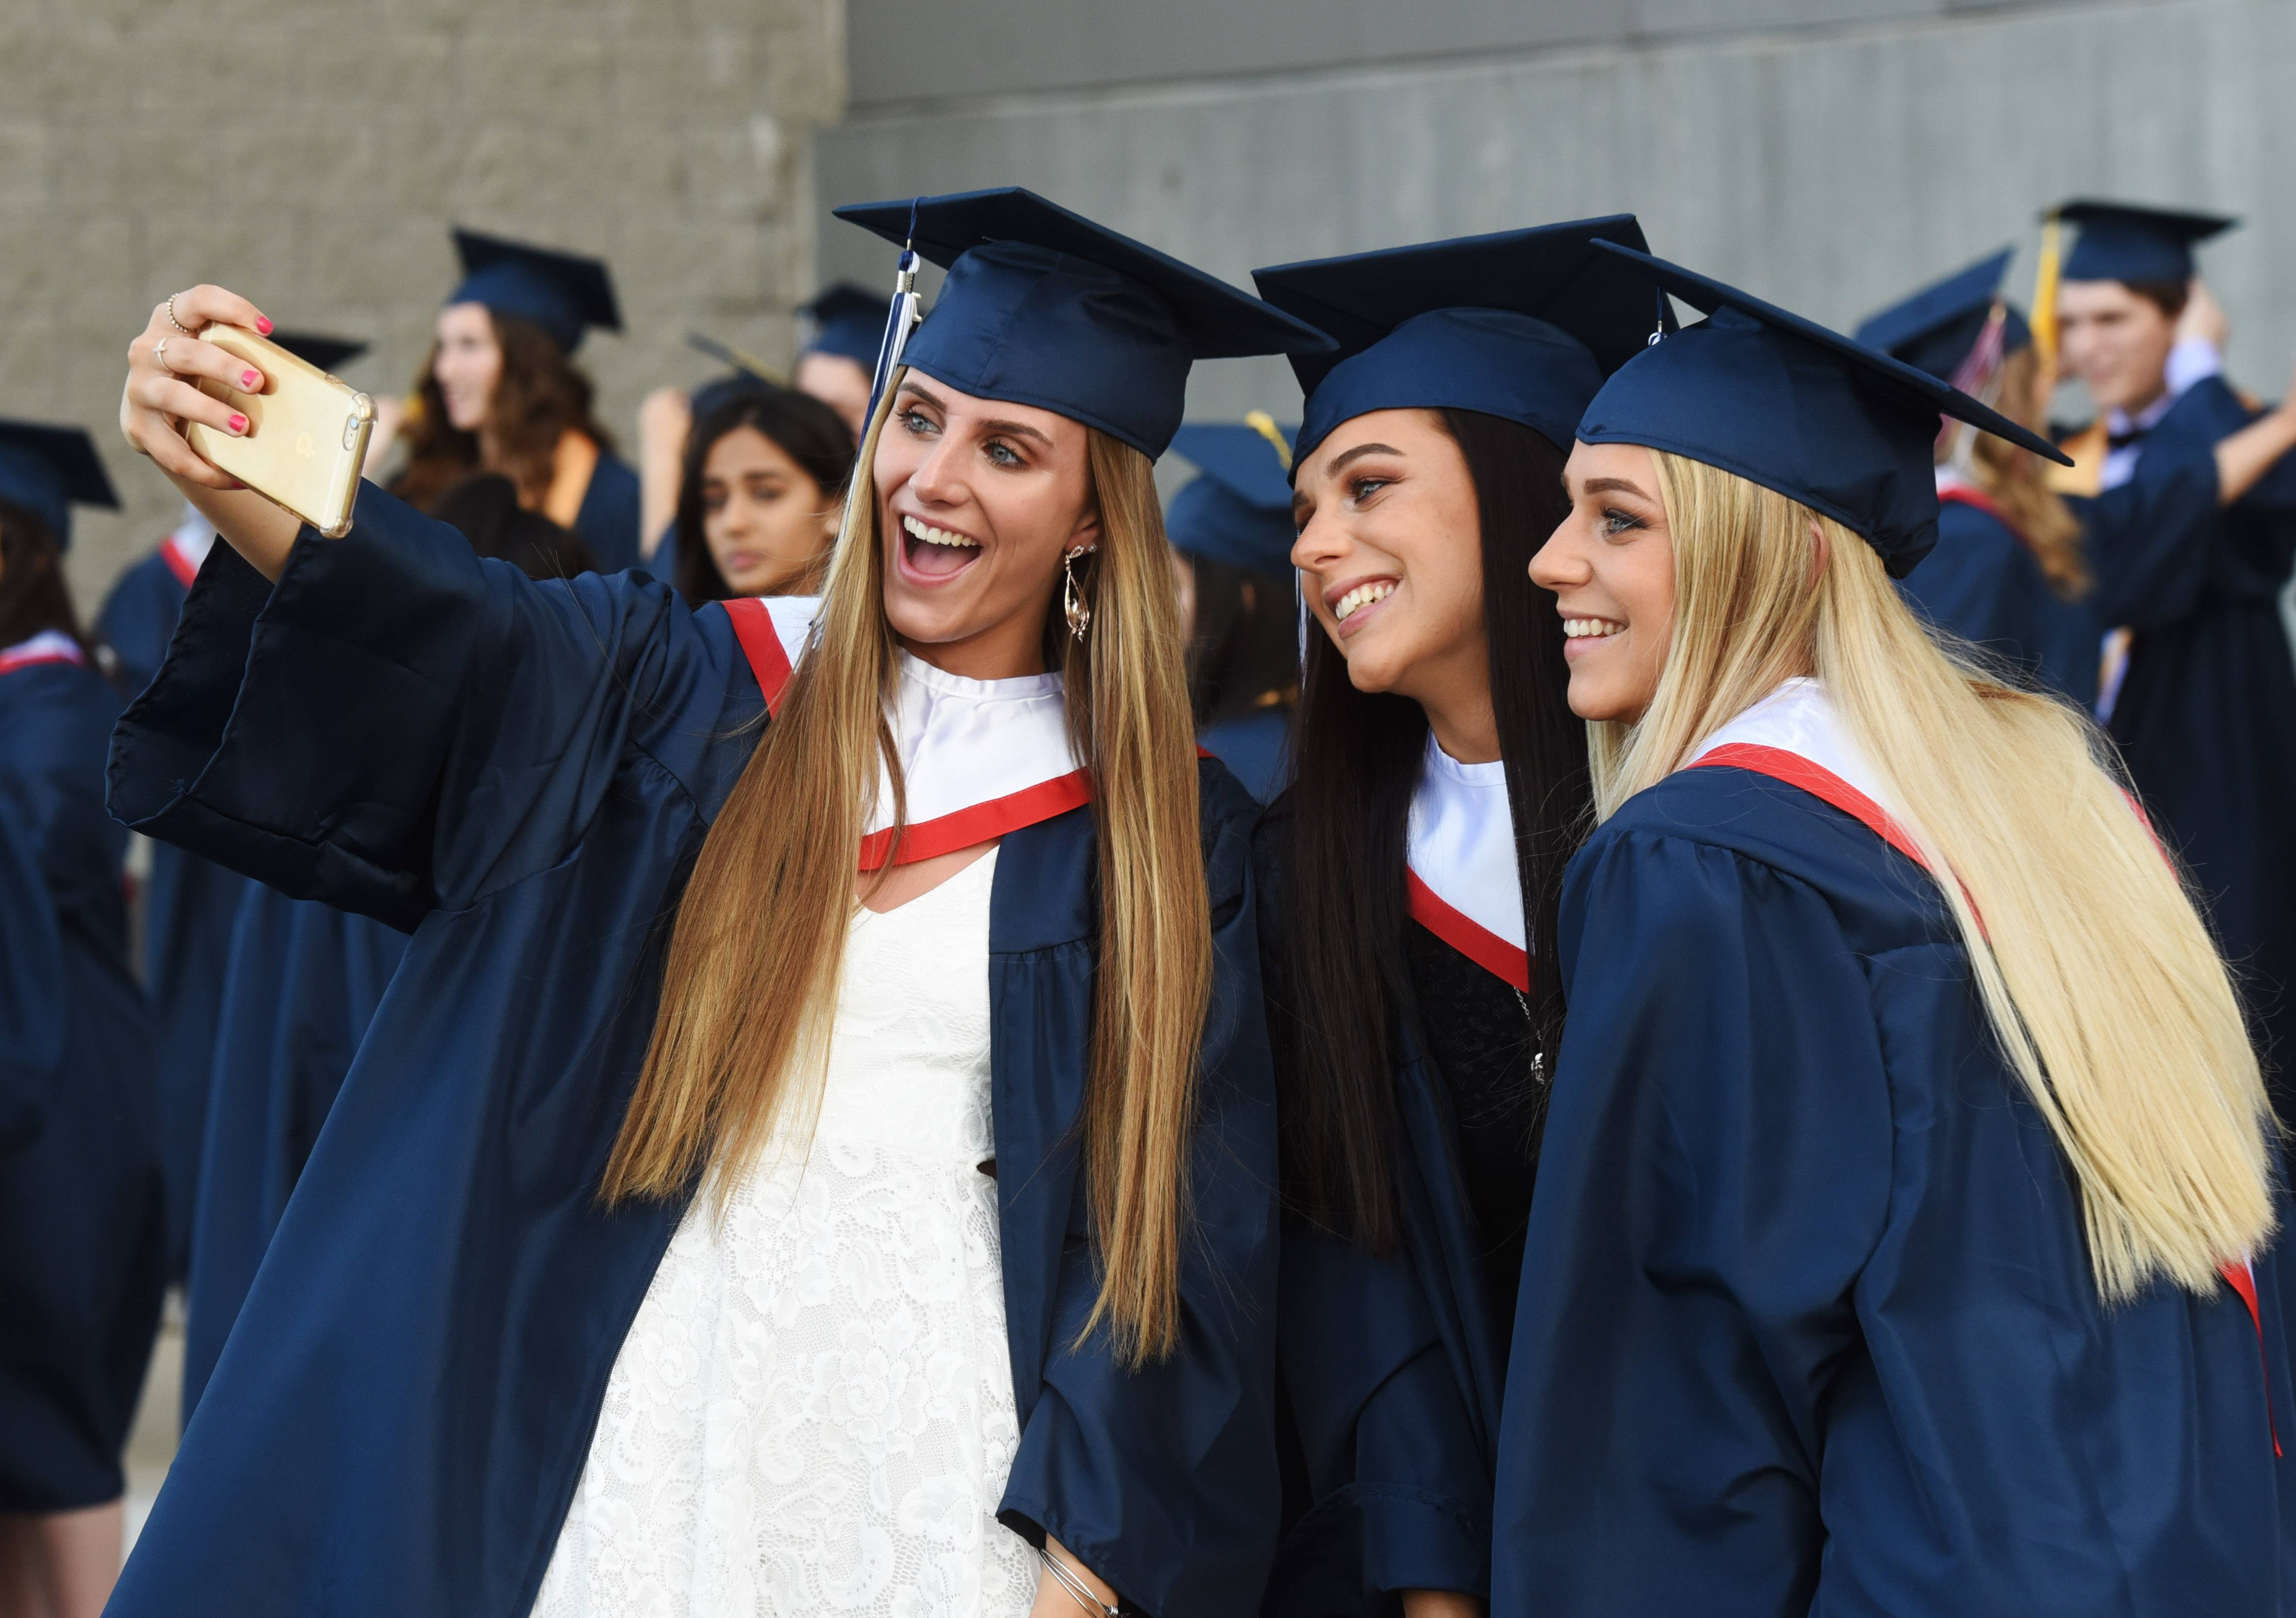 Becca Dahm, left, takes a photo with her cousins, twins Alexa, middle, and Haley Ziemianin prior to the Conant High School graduation at the Sears Centre in Hoffman Estates Wednesday.